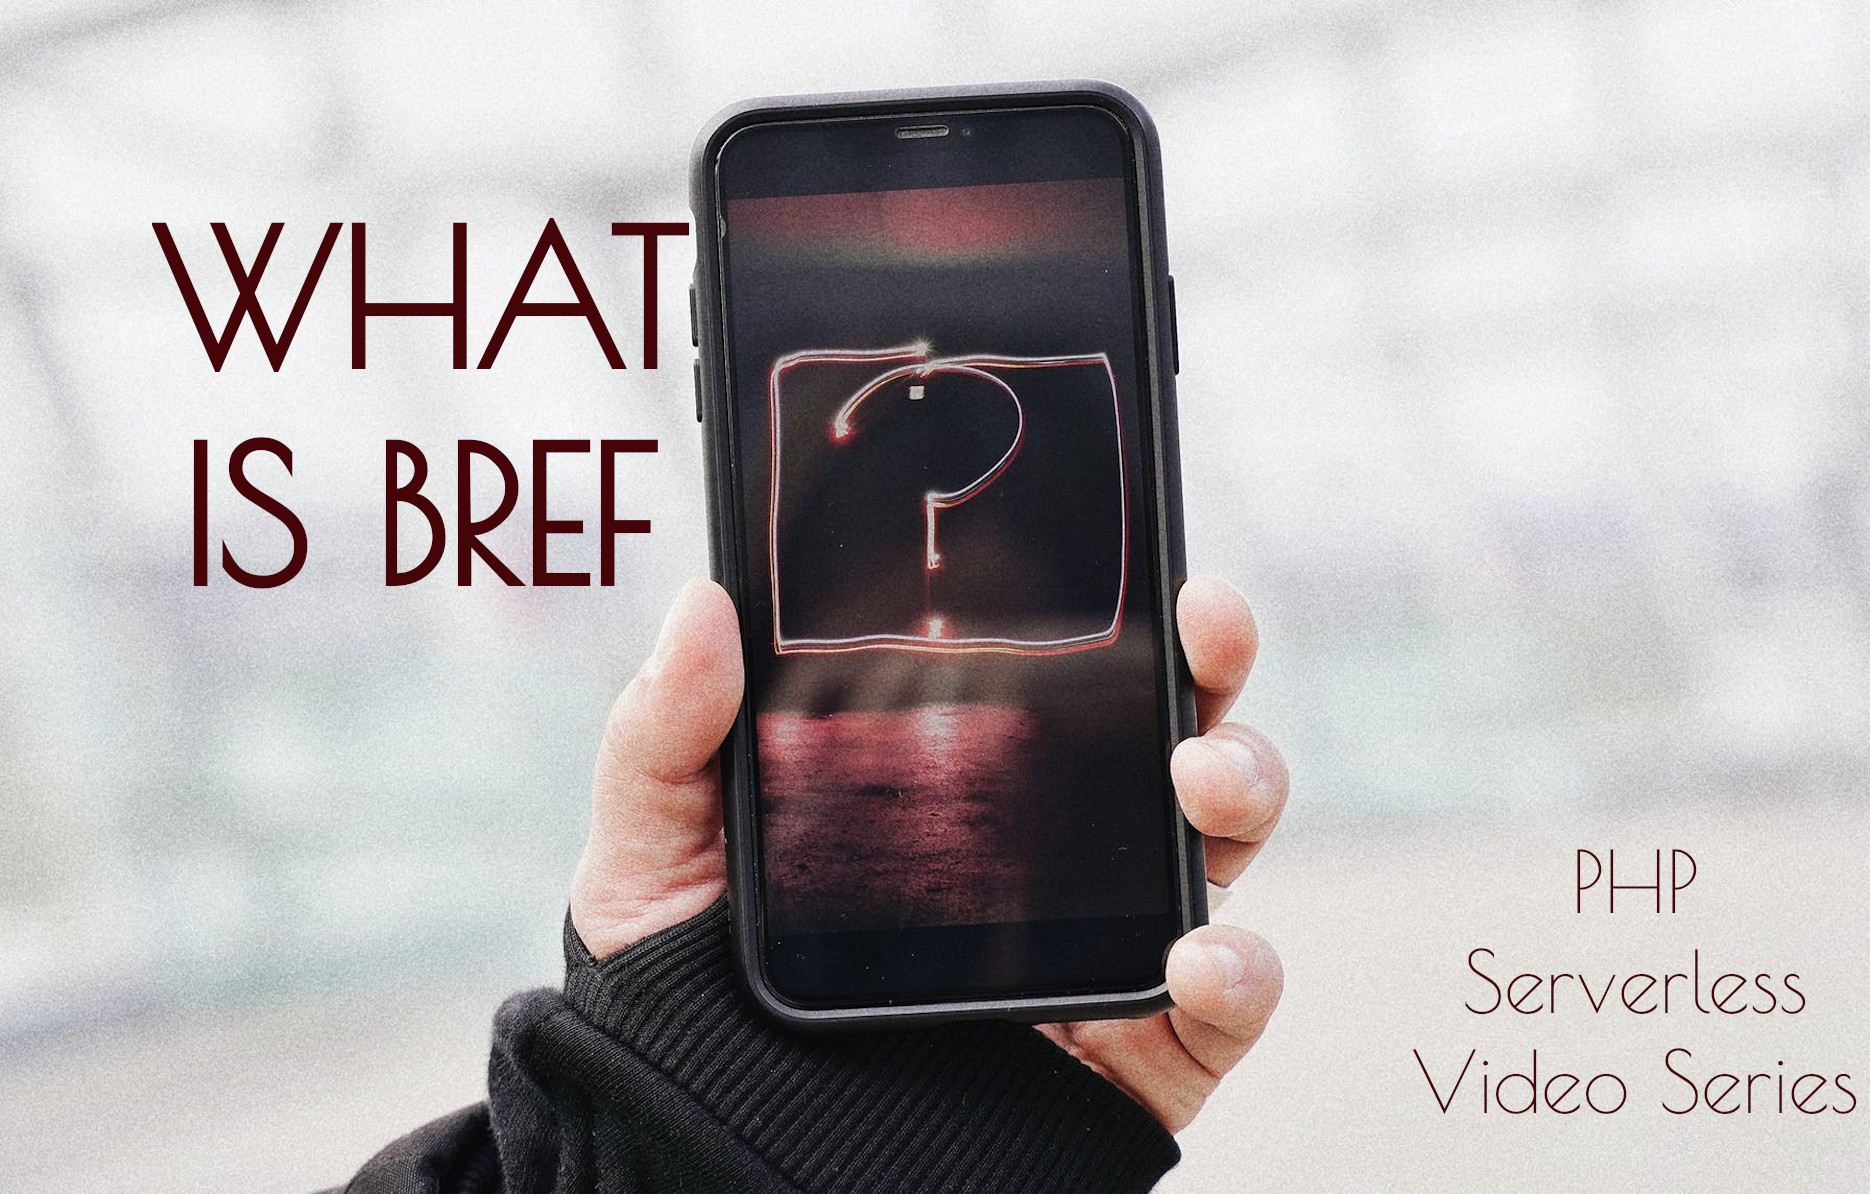 What Is Bref?